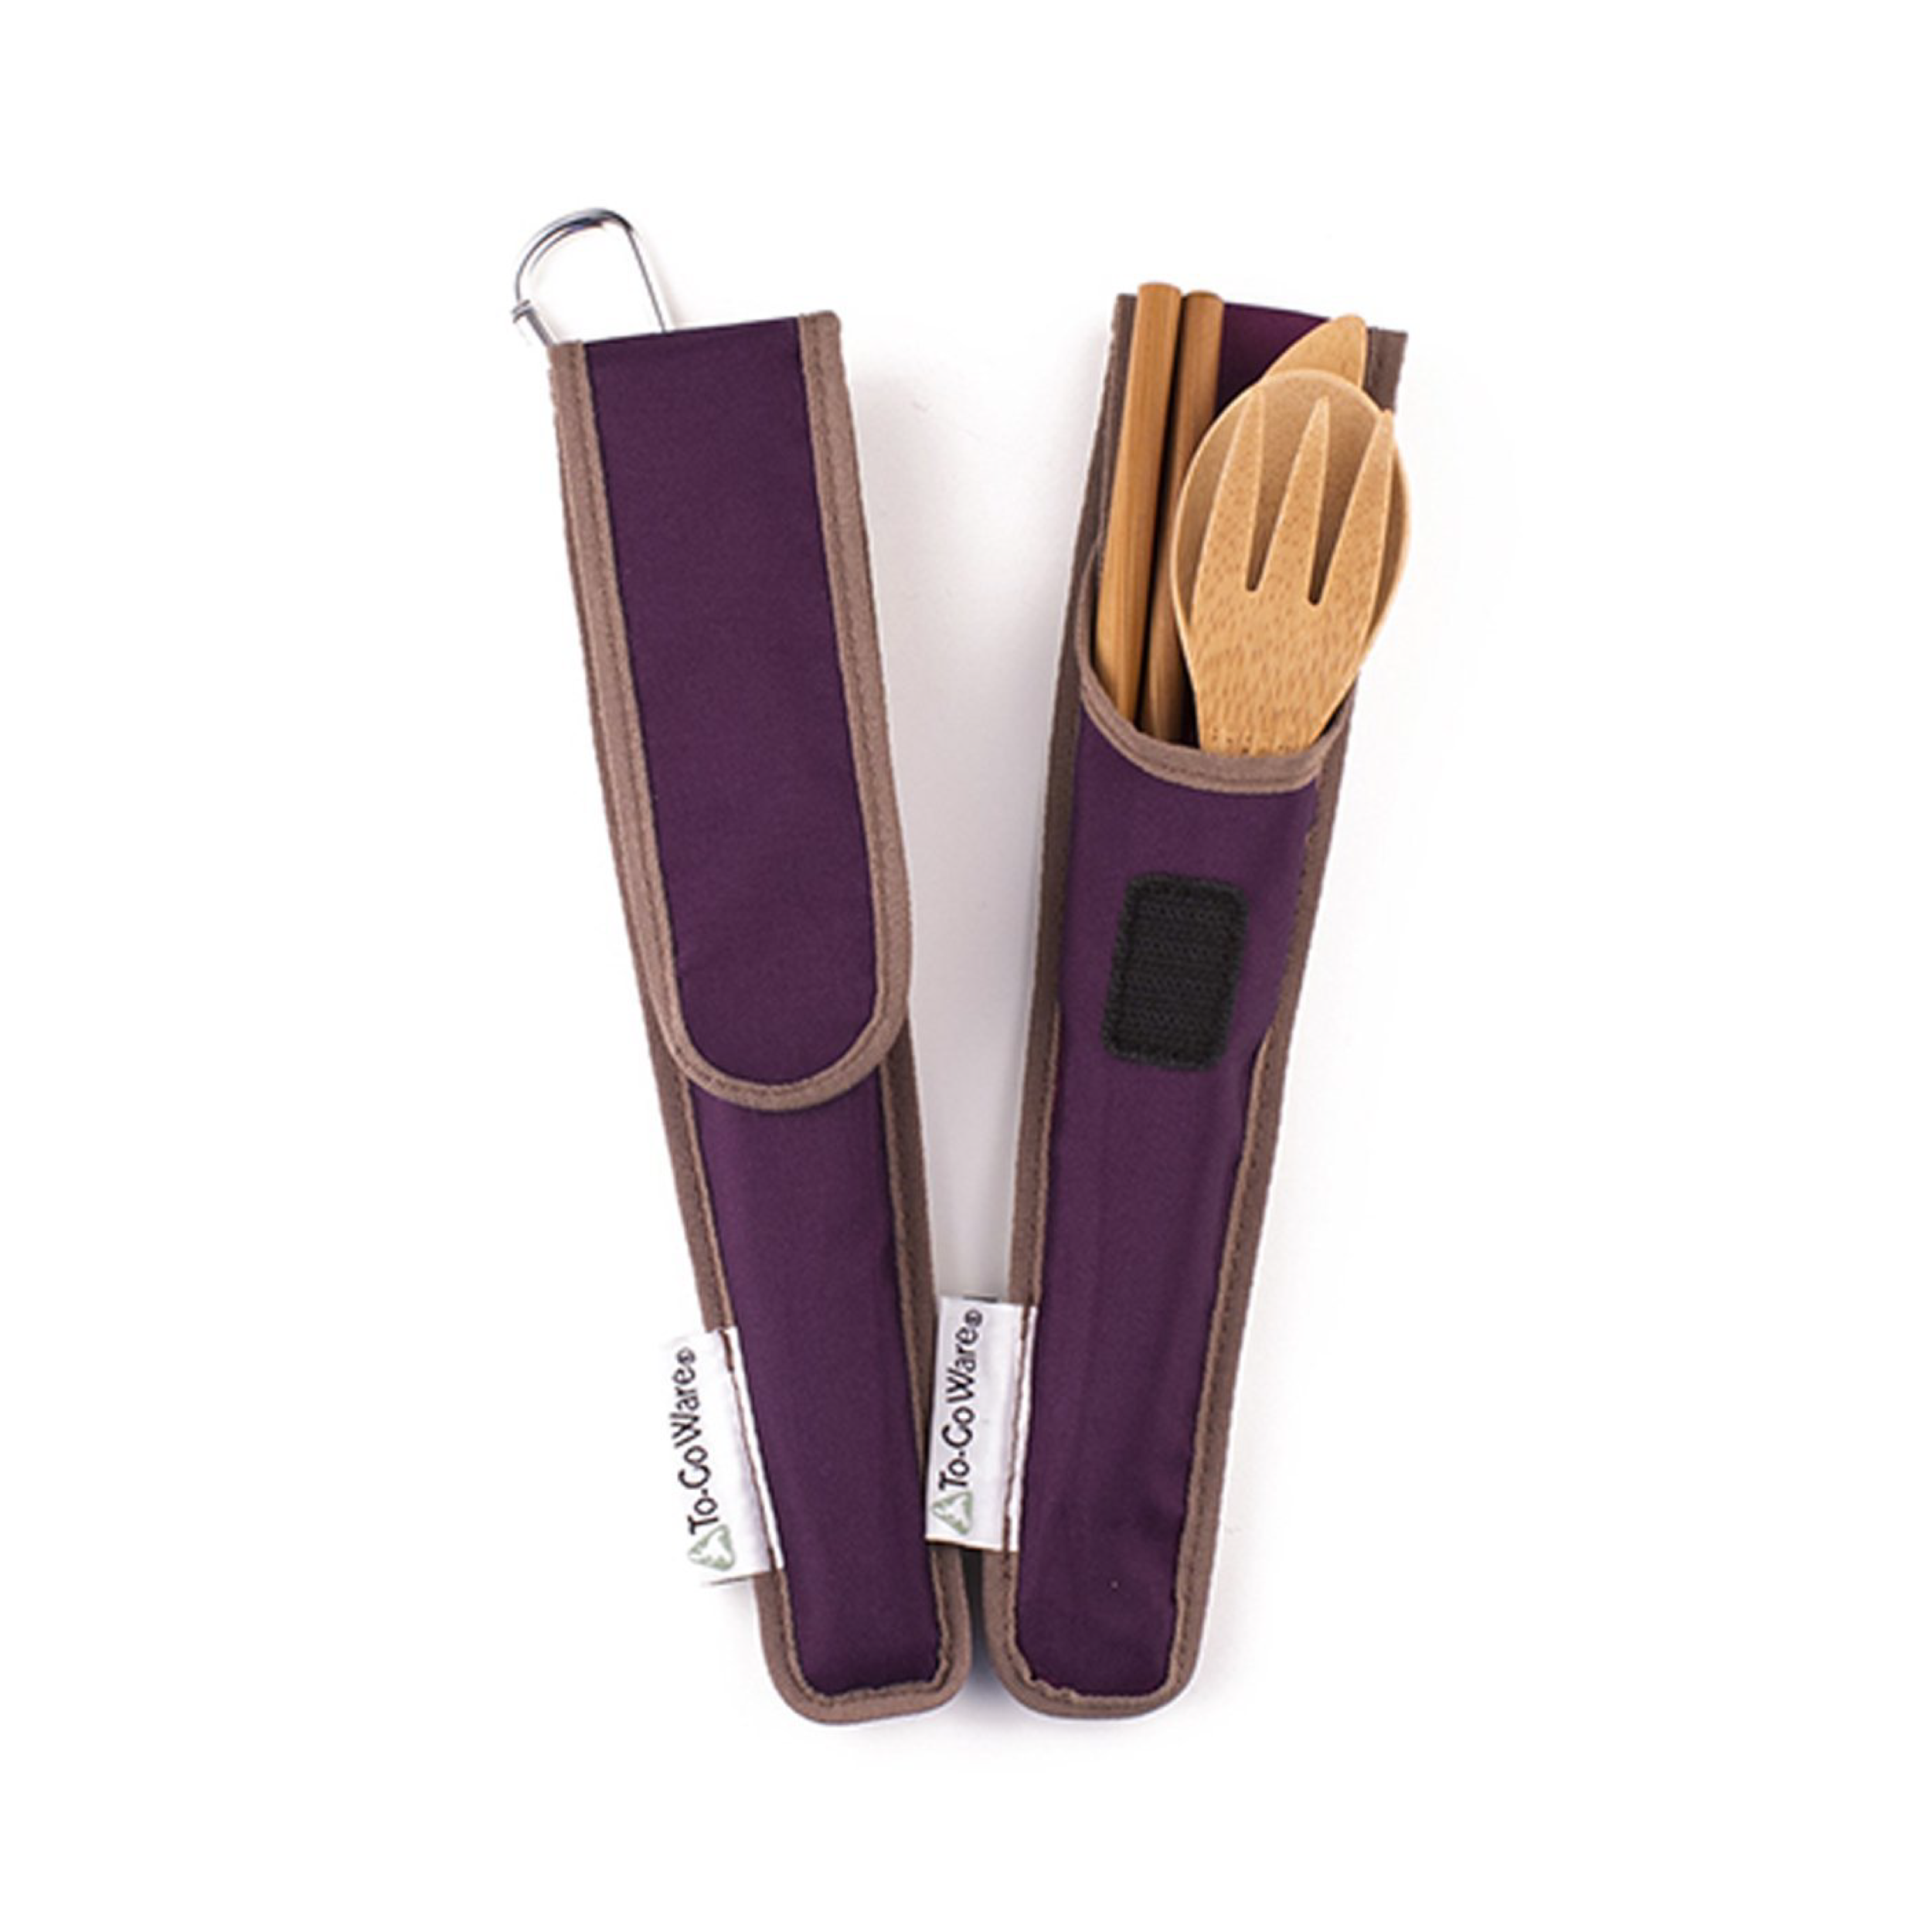 I love these! They're nice and compact, you can keep one in your car, your purse and at your desk. Plus, since they're bamboo, you can take them in to most public spaces because they aren't viewed as weapons like metal utensils can be.